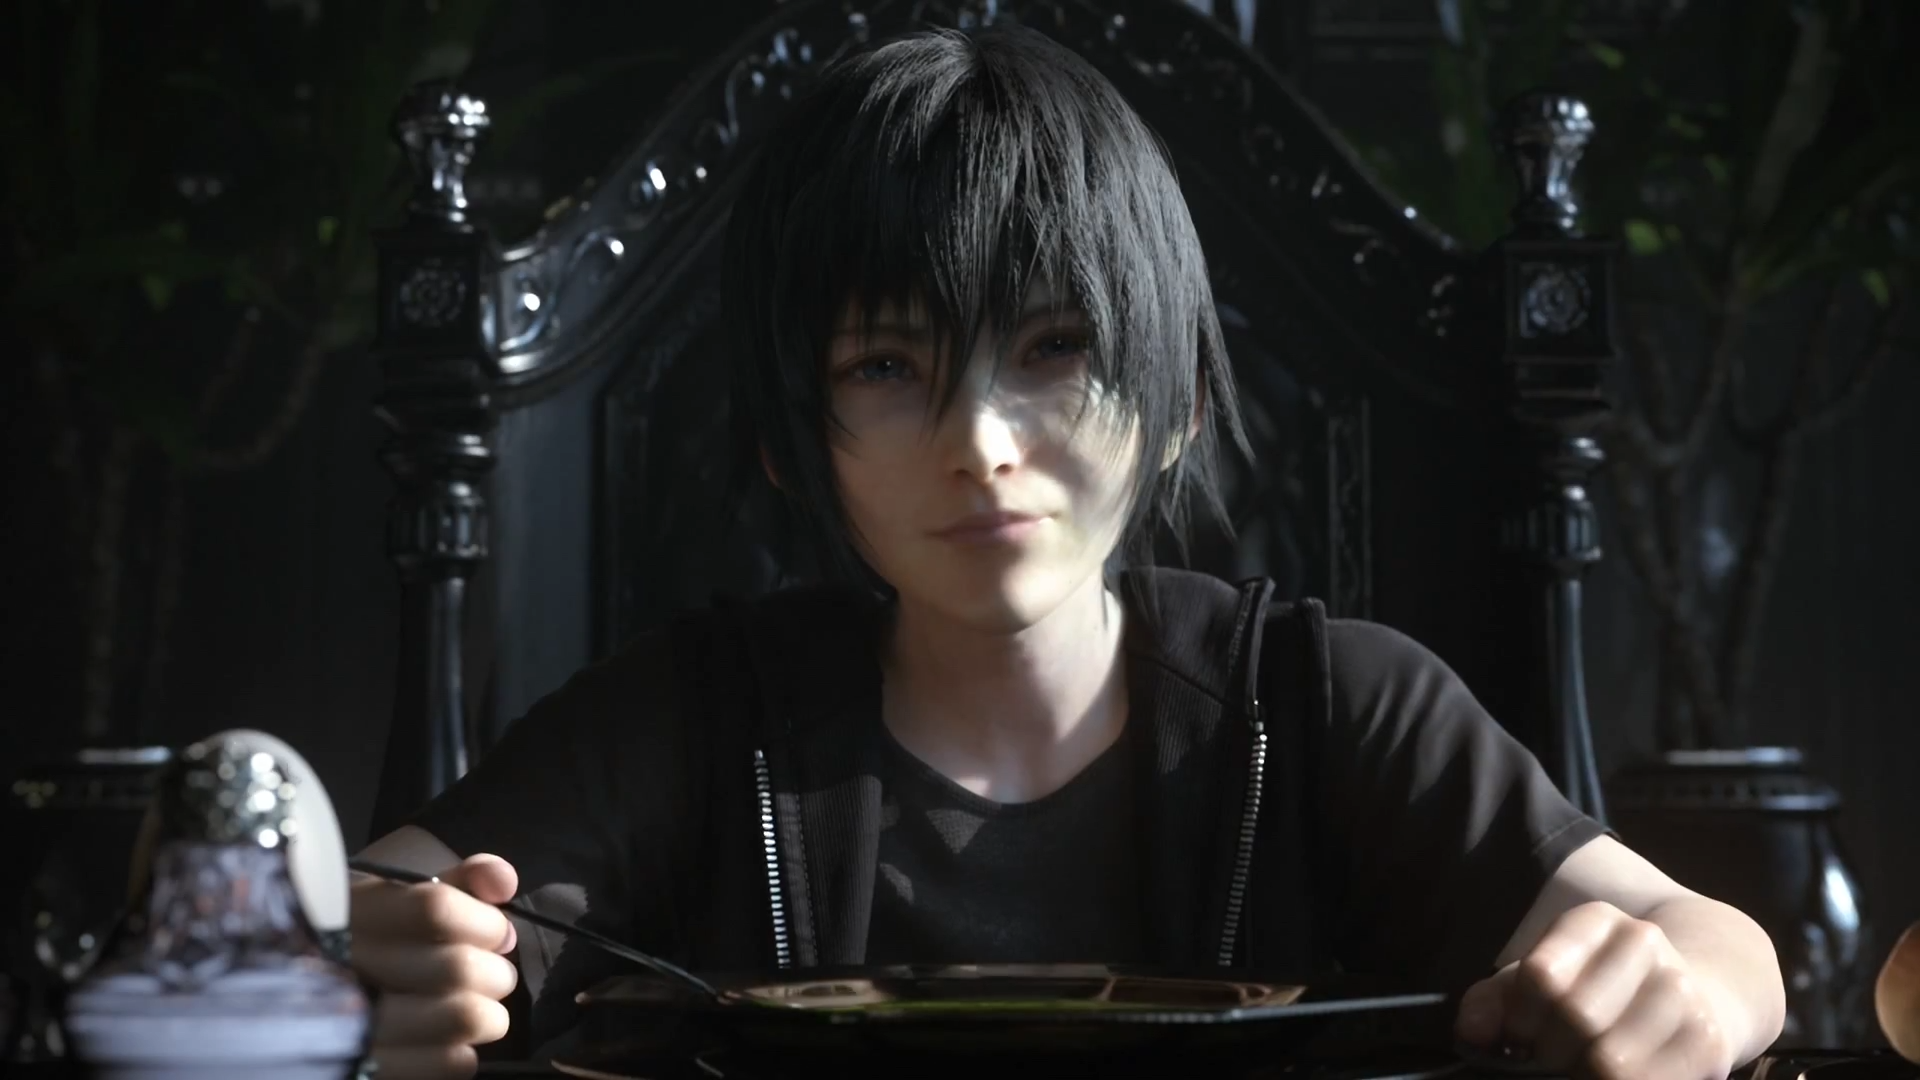 4k Noctis Lucis Caelum Final Fantasy Xv Hd Games 4k: File:Young Noctis.png